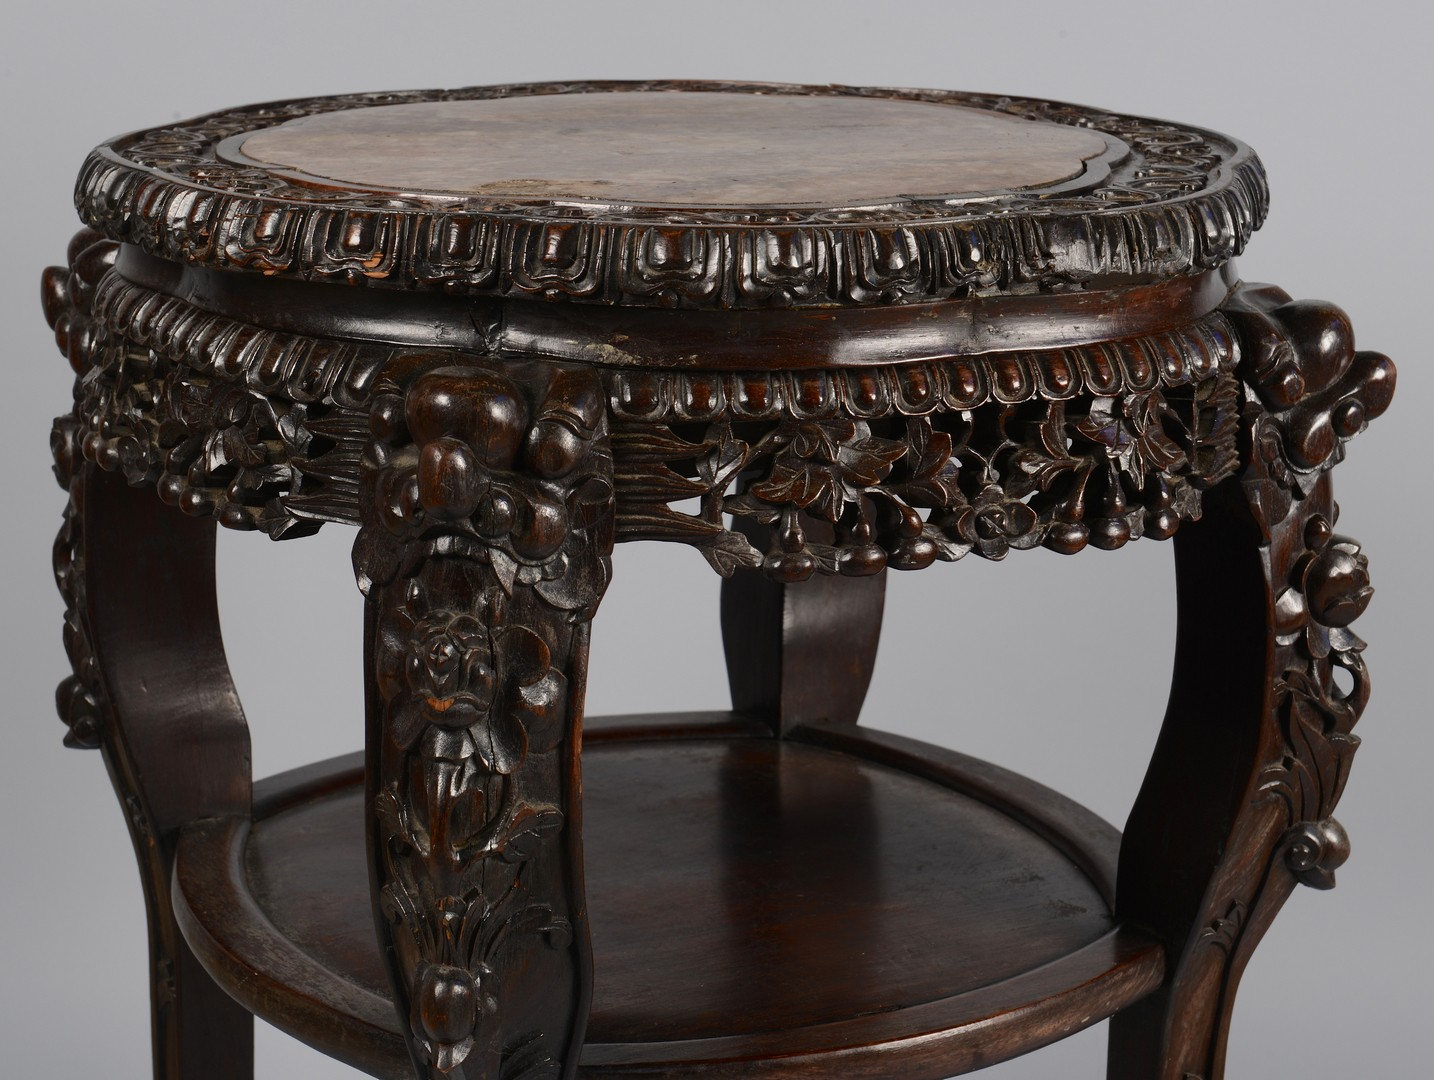 Lot 3594169: Chinese Carved Table/Stand w/ Marble Inset